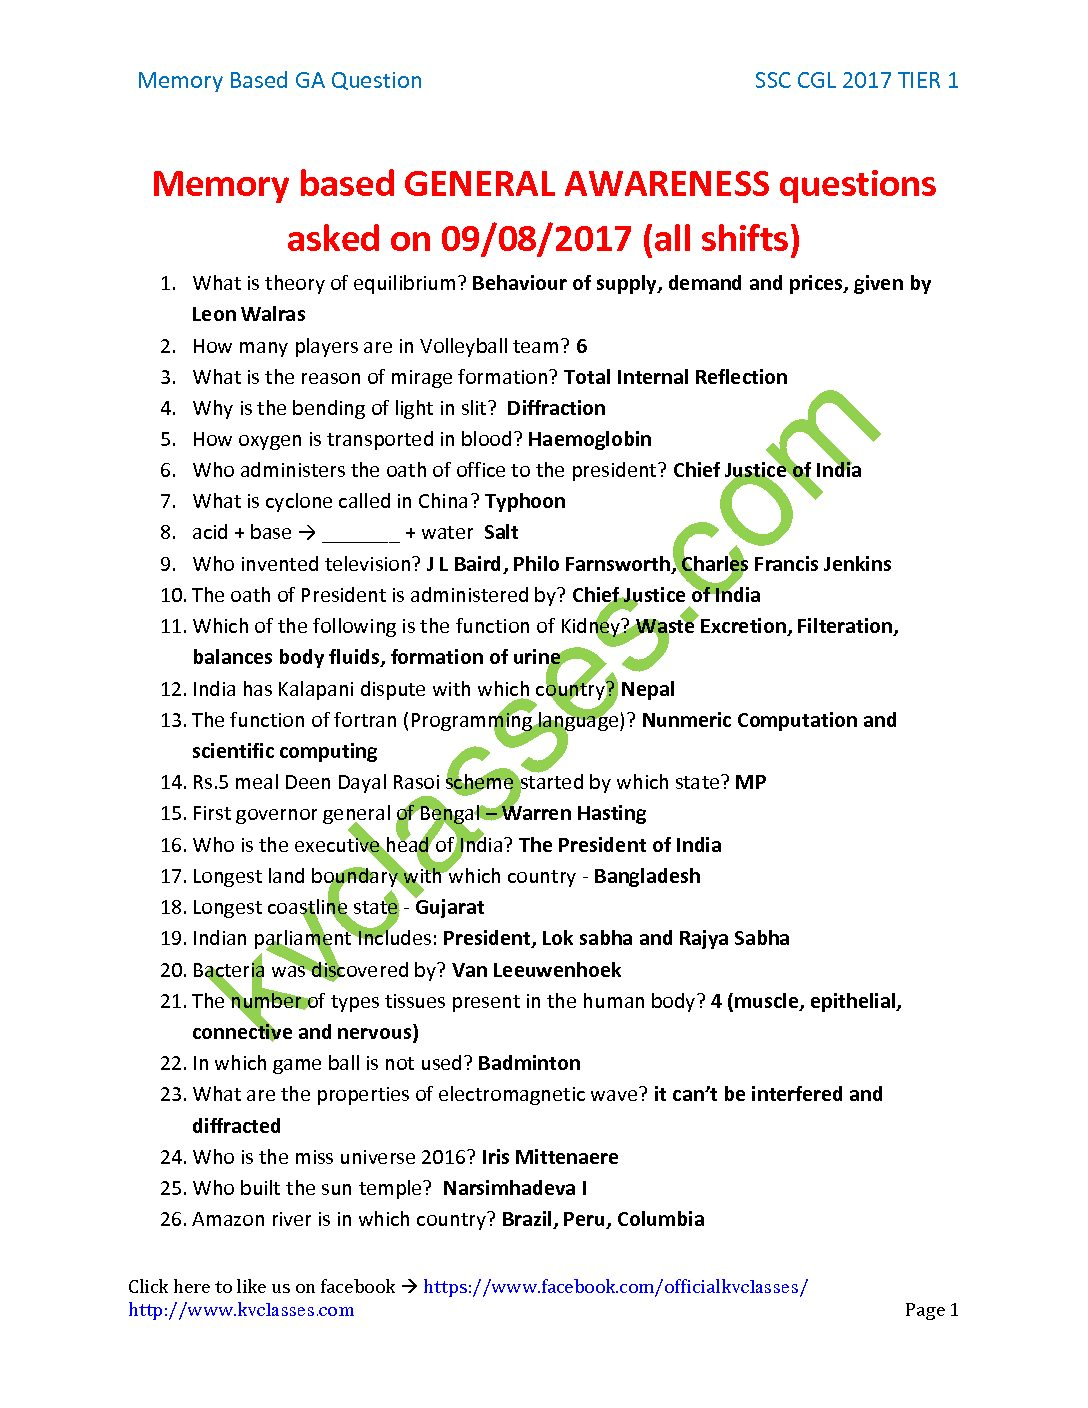 SSC CGL 2017 09 Aug all shifts memory based general awareness questions